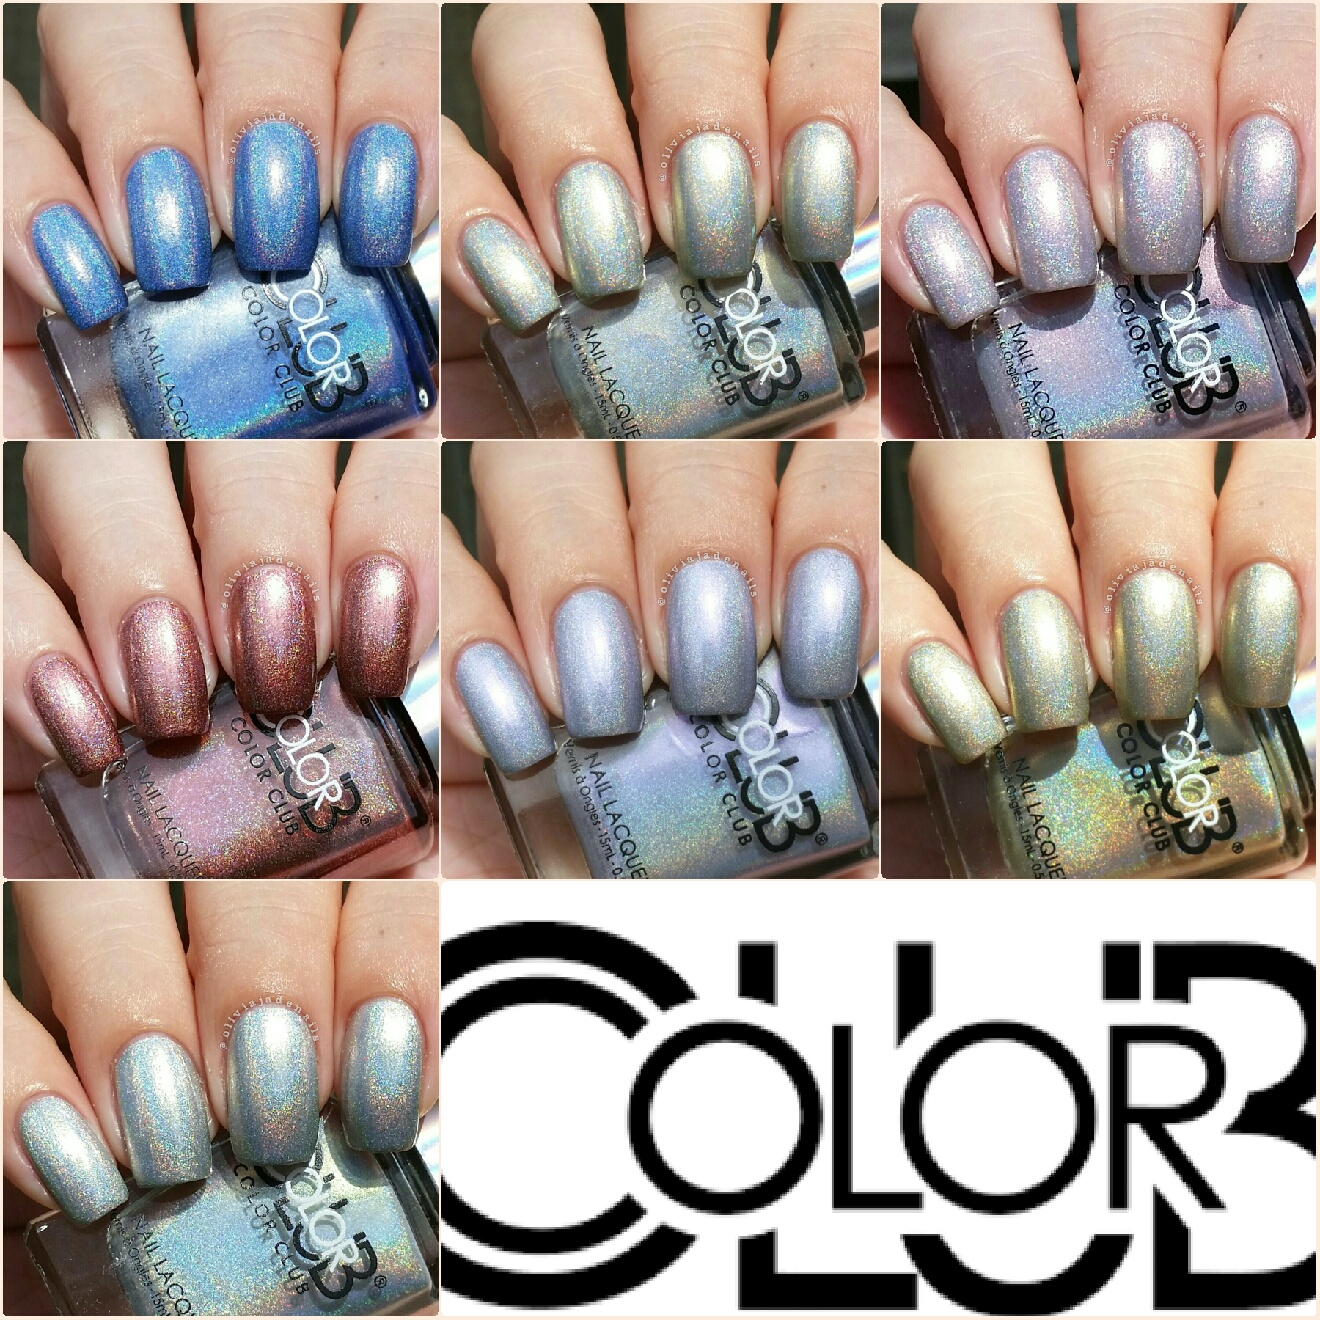 Olivia Jade Nails: Color Club Halo Hues 2015 Collection - Swatches ...